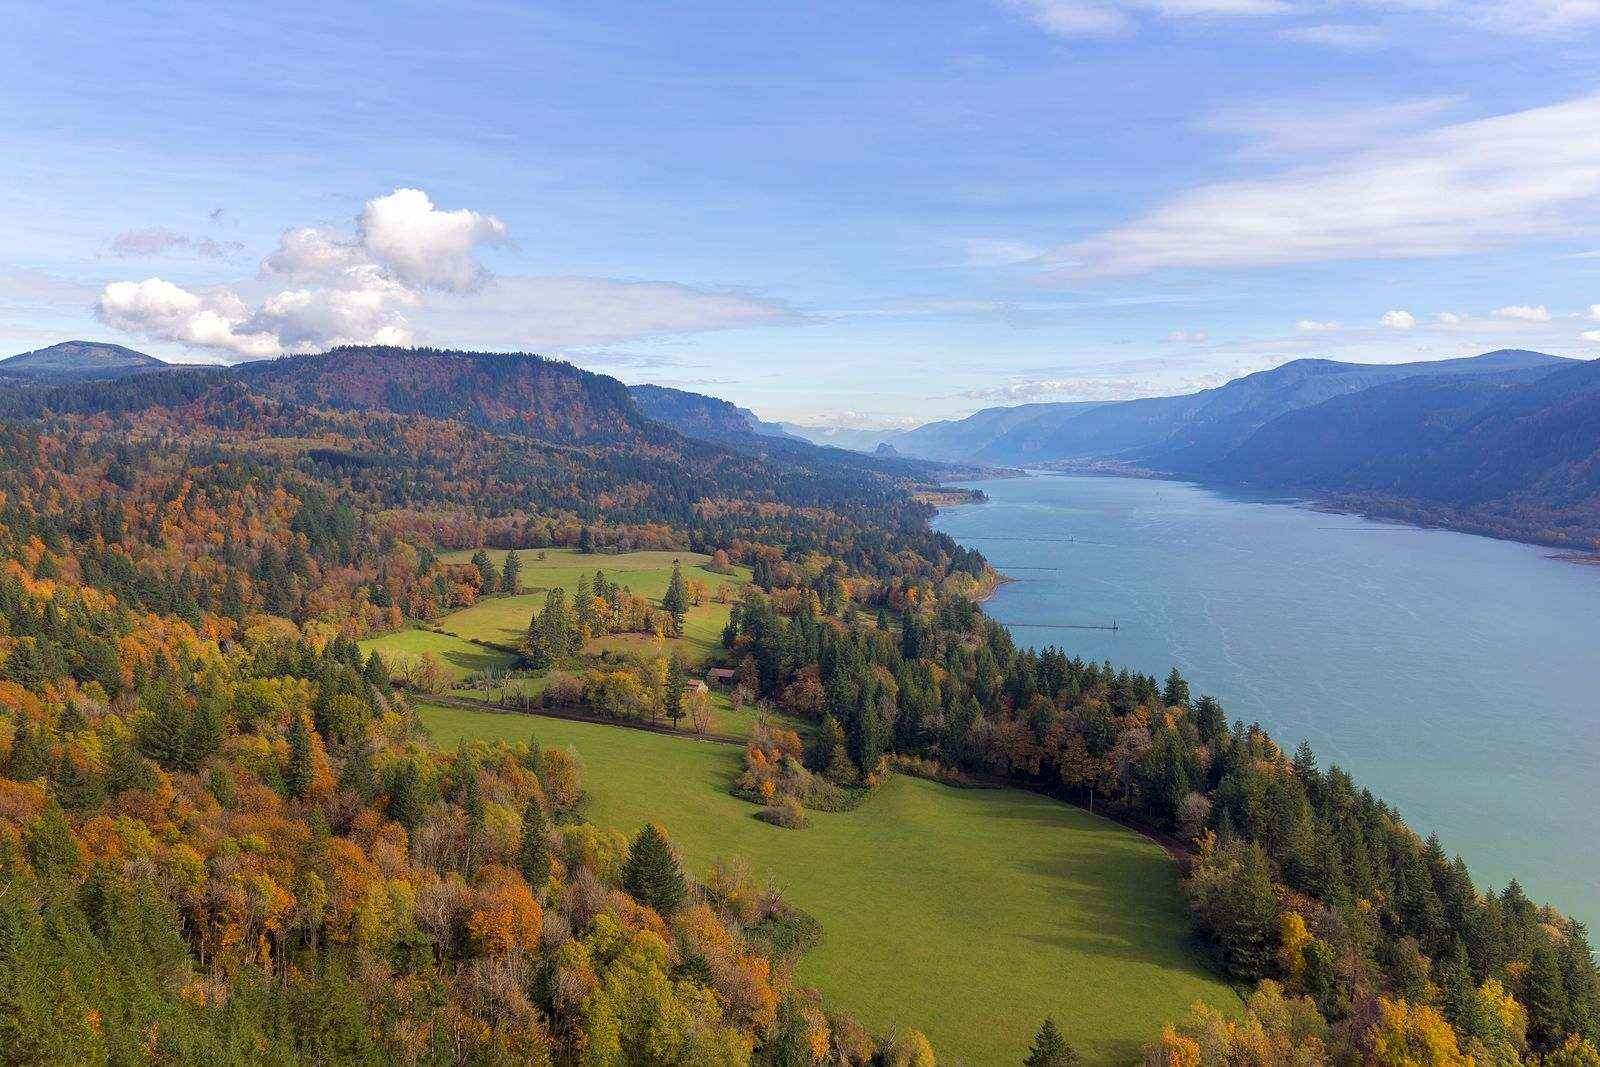 View over Columbia River Gorge, one of the most beautiful places in Oregon